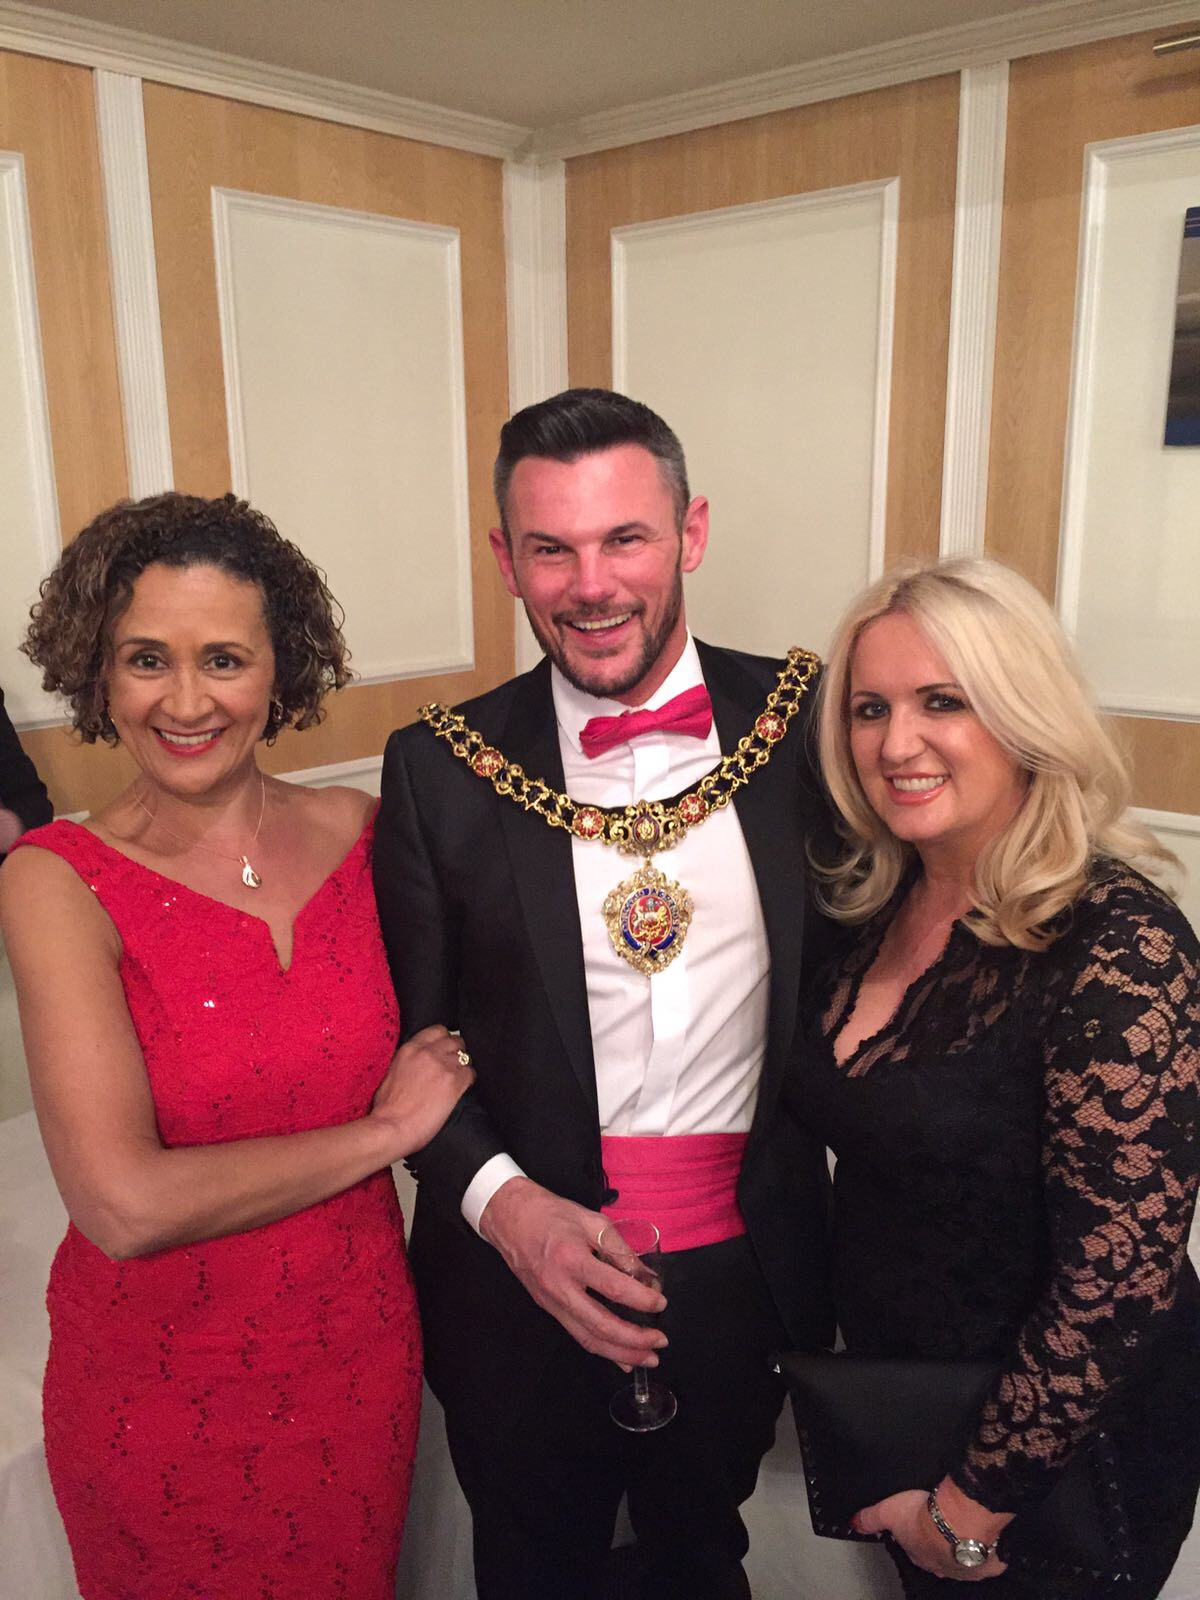 Cathy and Jacqui meet Lord Mayor of Manchester at the 2017 Hatters' Ball